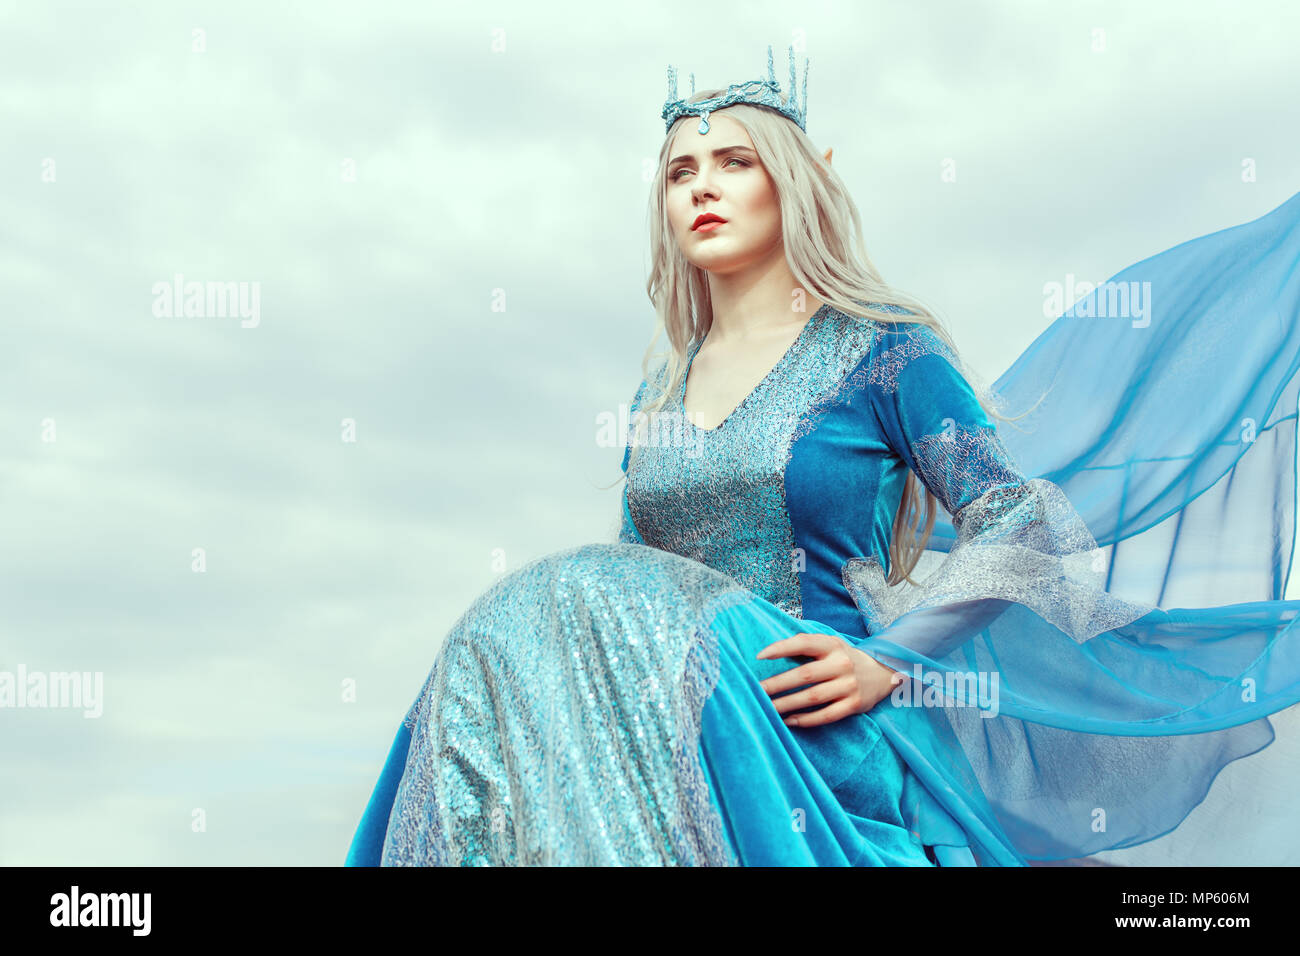 Portrait of a beautiful young woman elf in a blue dress. - Stock Image